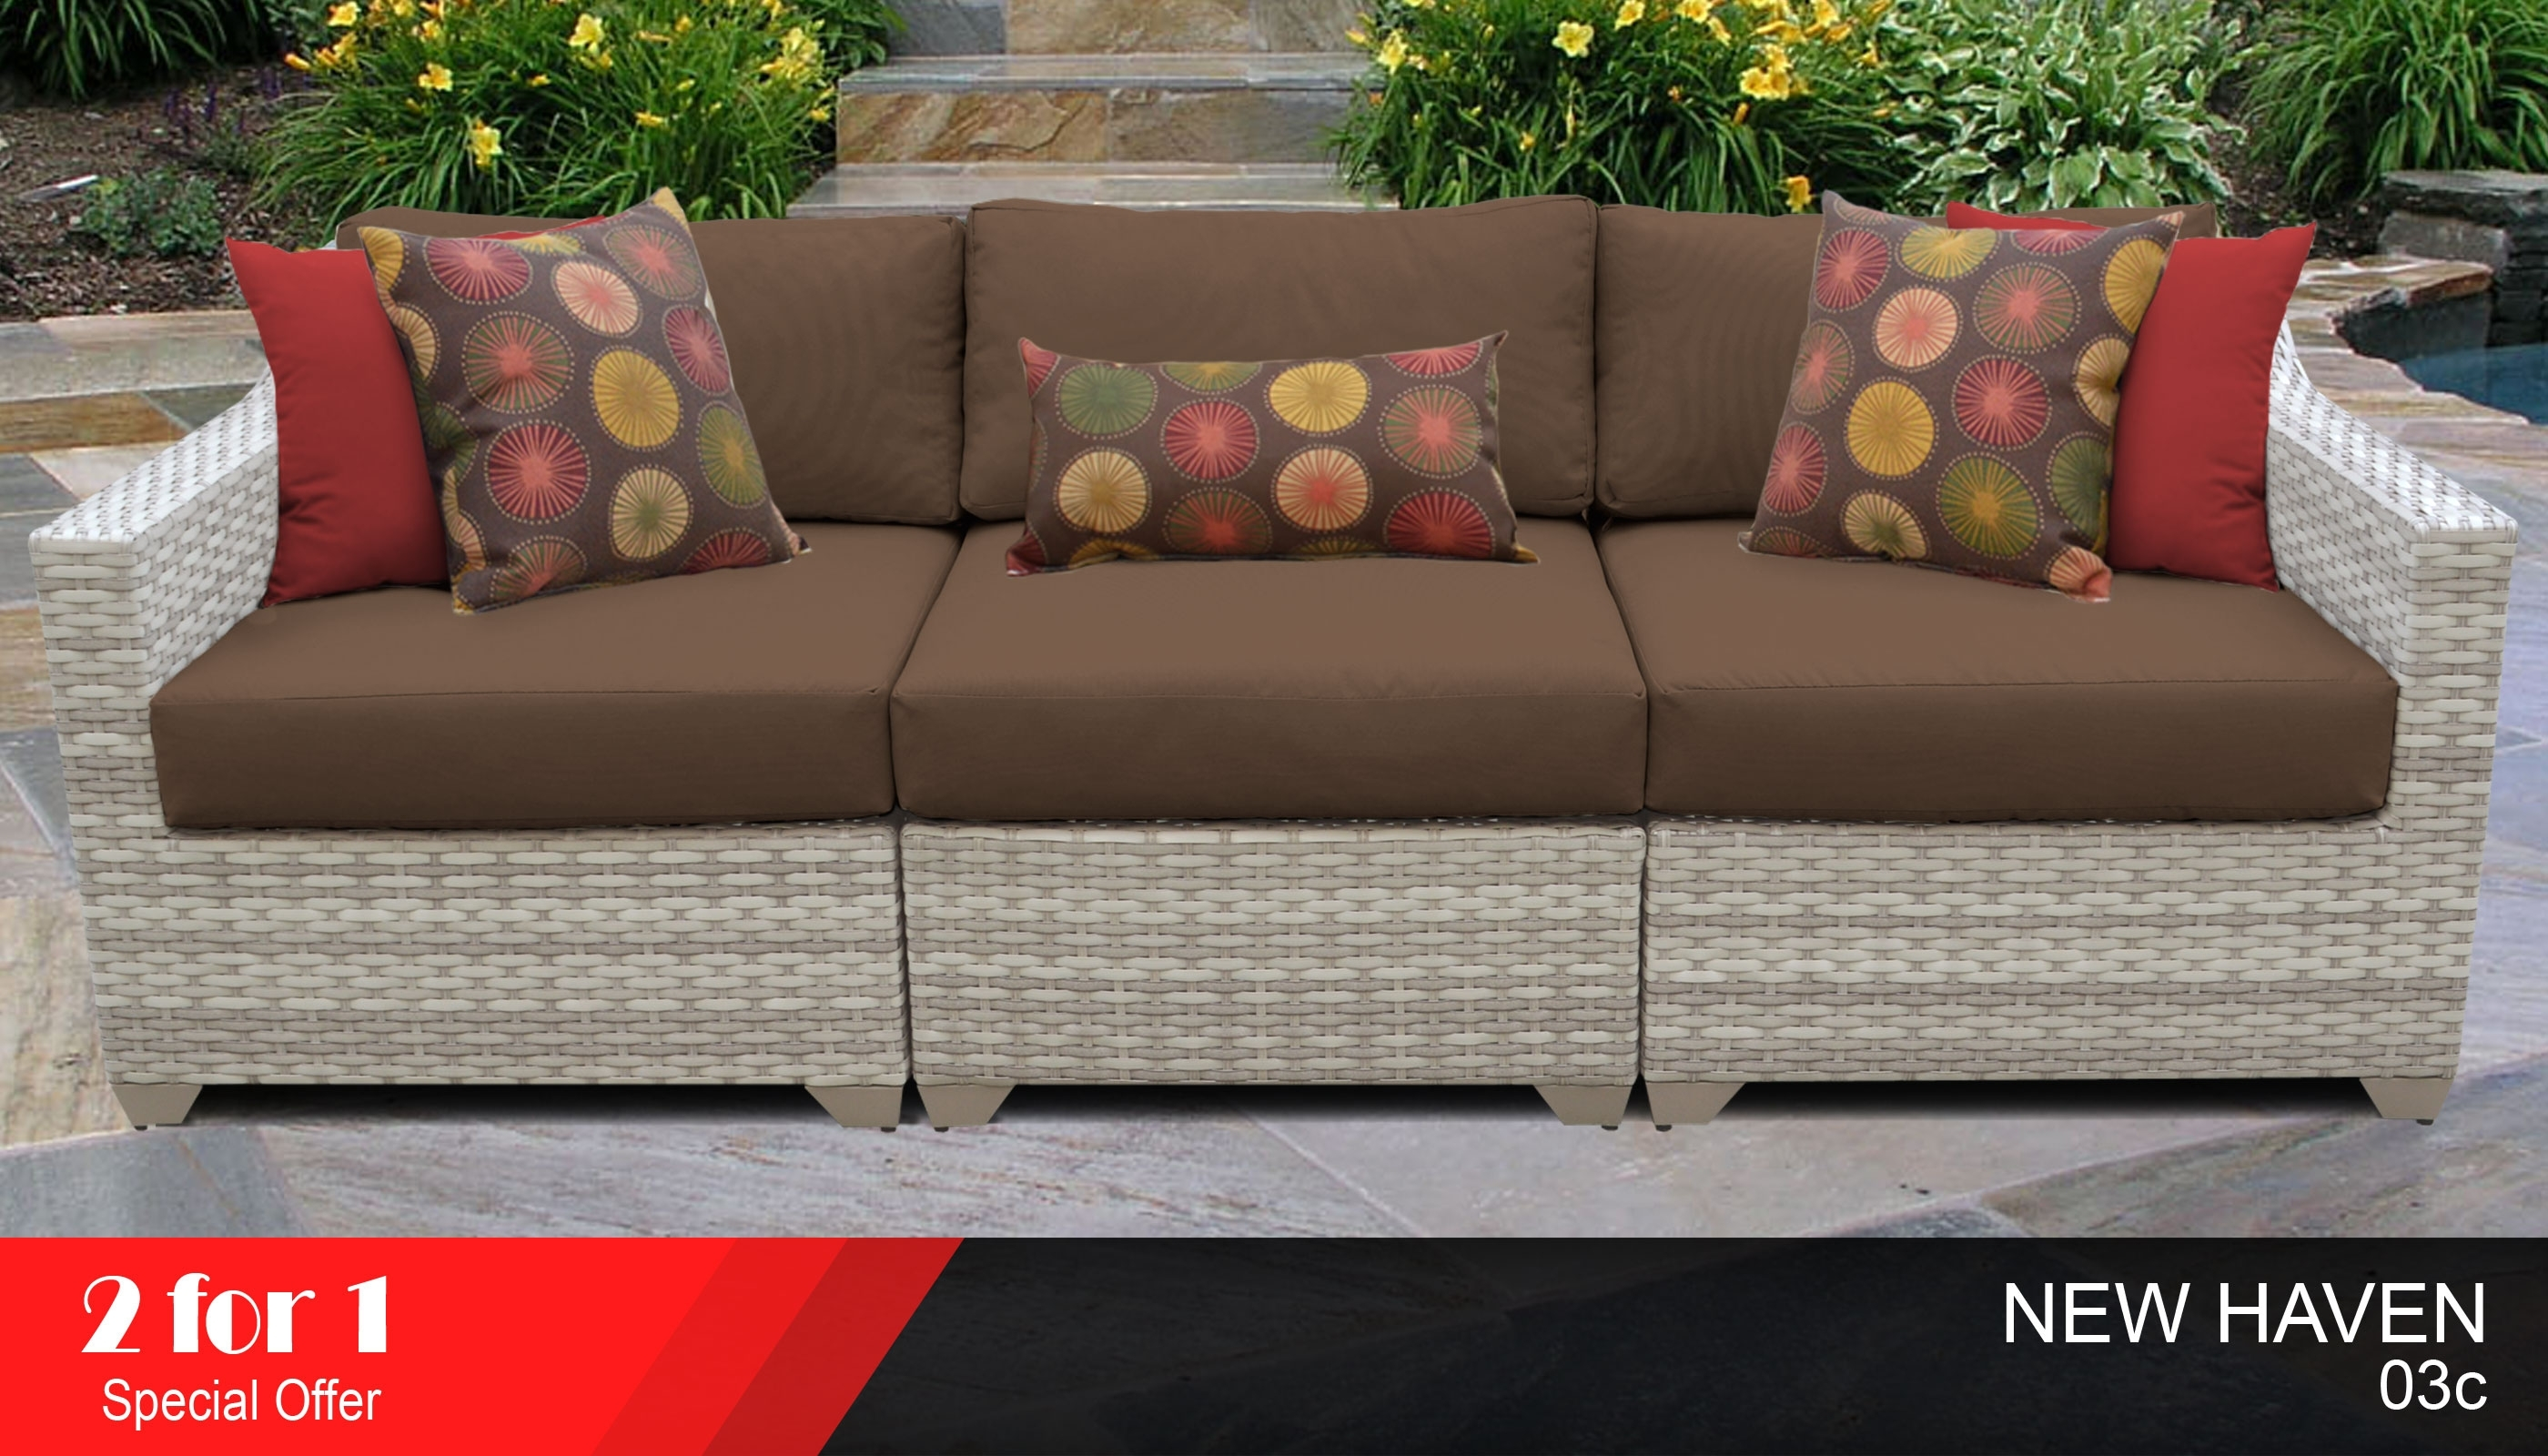 3 Piece Outdoor Sofa Set | Outdoor Wicker Sectional Sofa for Haven 3 Piece Sectionals (Image 1 of 32)